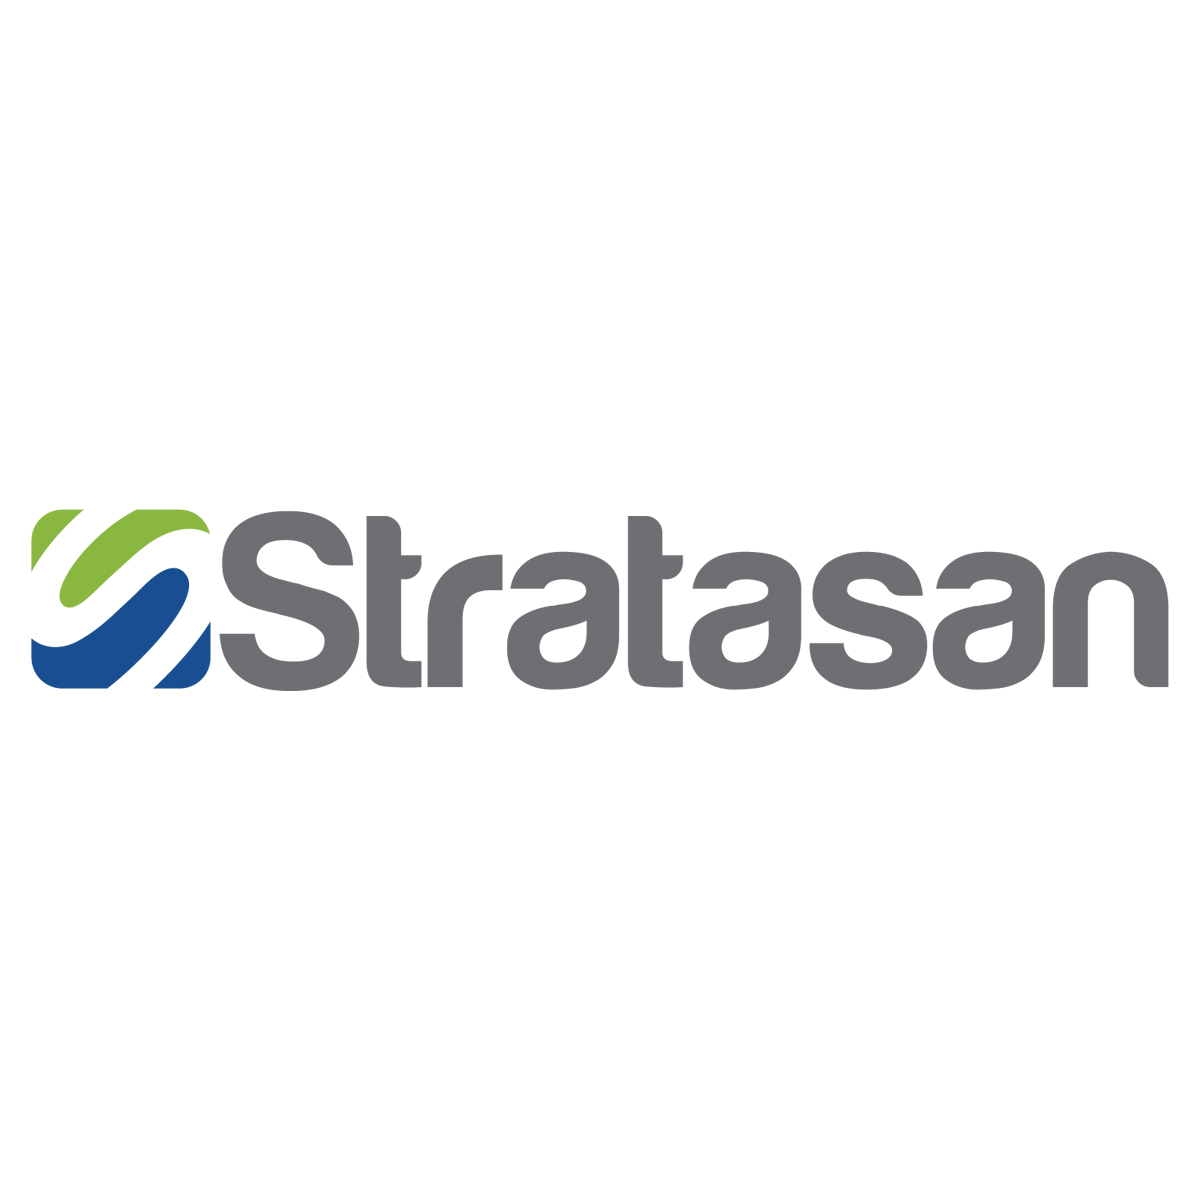 Stratasan   Empowering hospitals and health systems to maximize strategic growth.    Learn More →